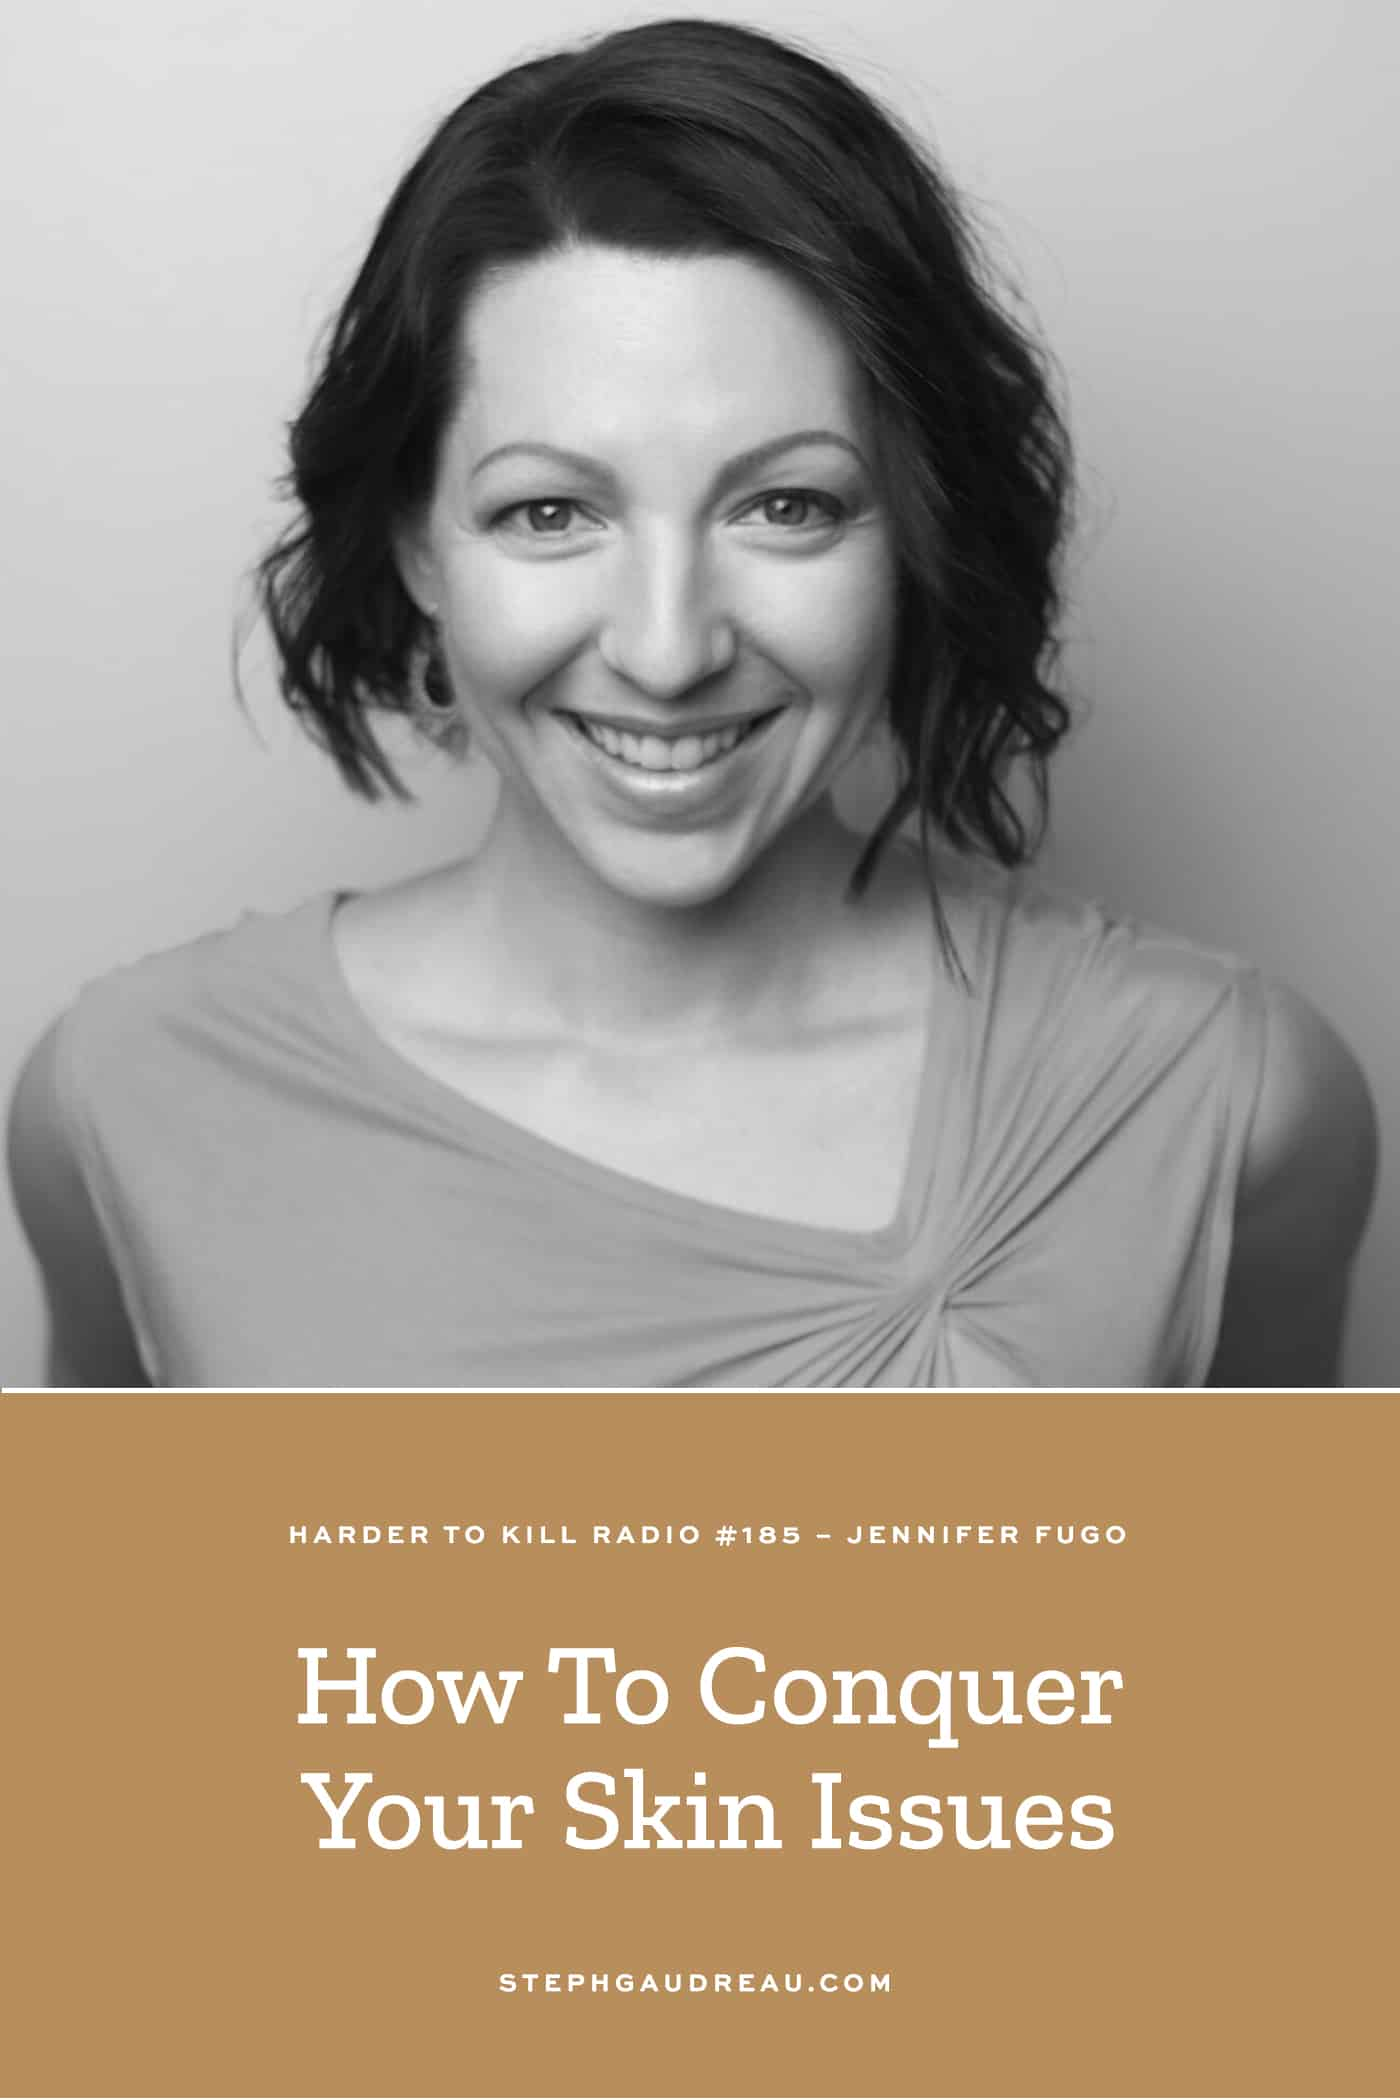 Harder To Kill Radio 185 How To Conquer Your Skin Issues w/ Jennifer Fugo